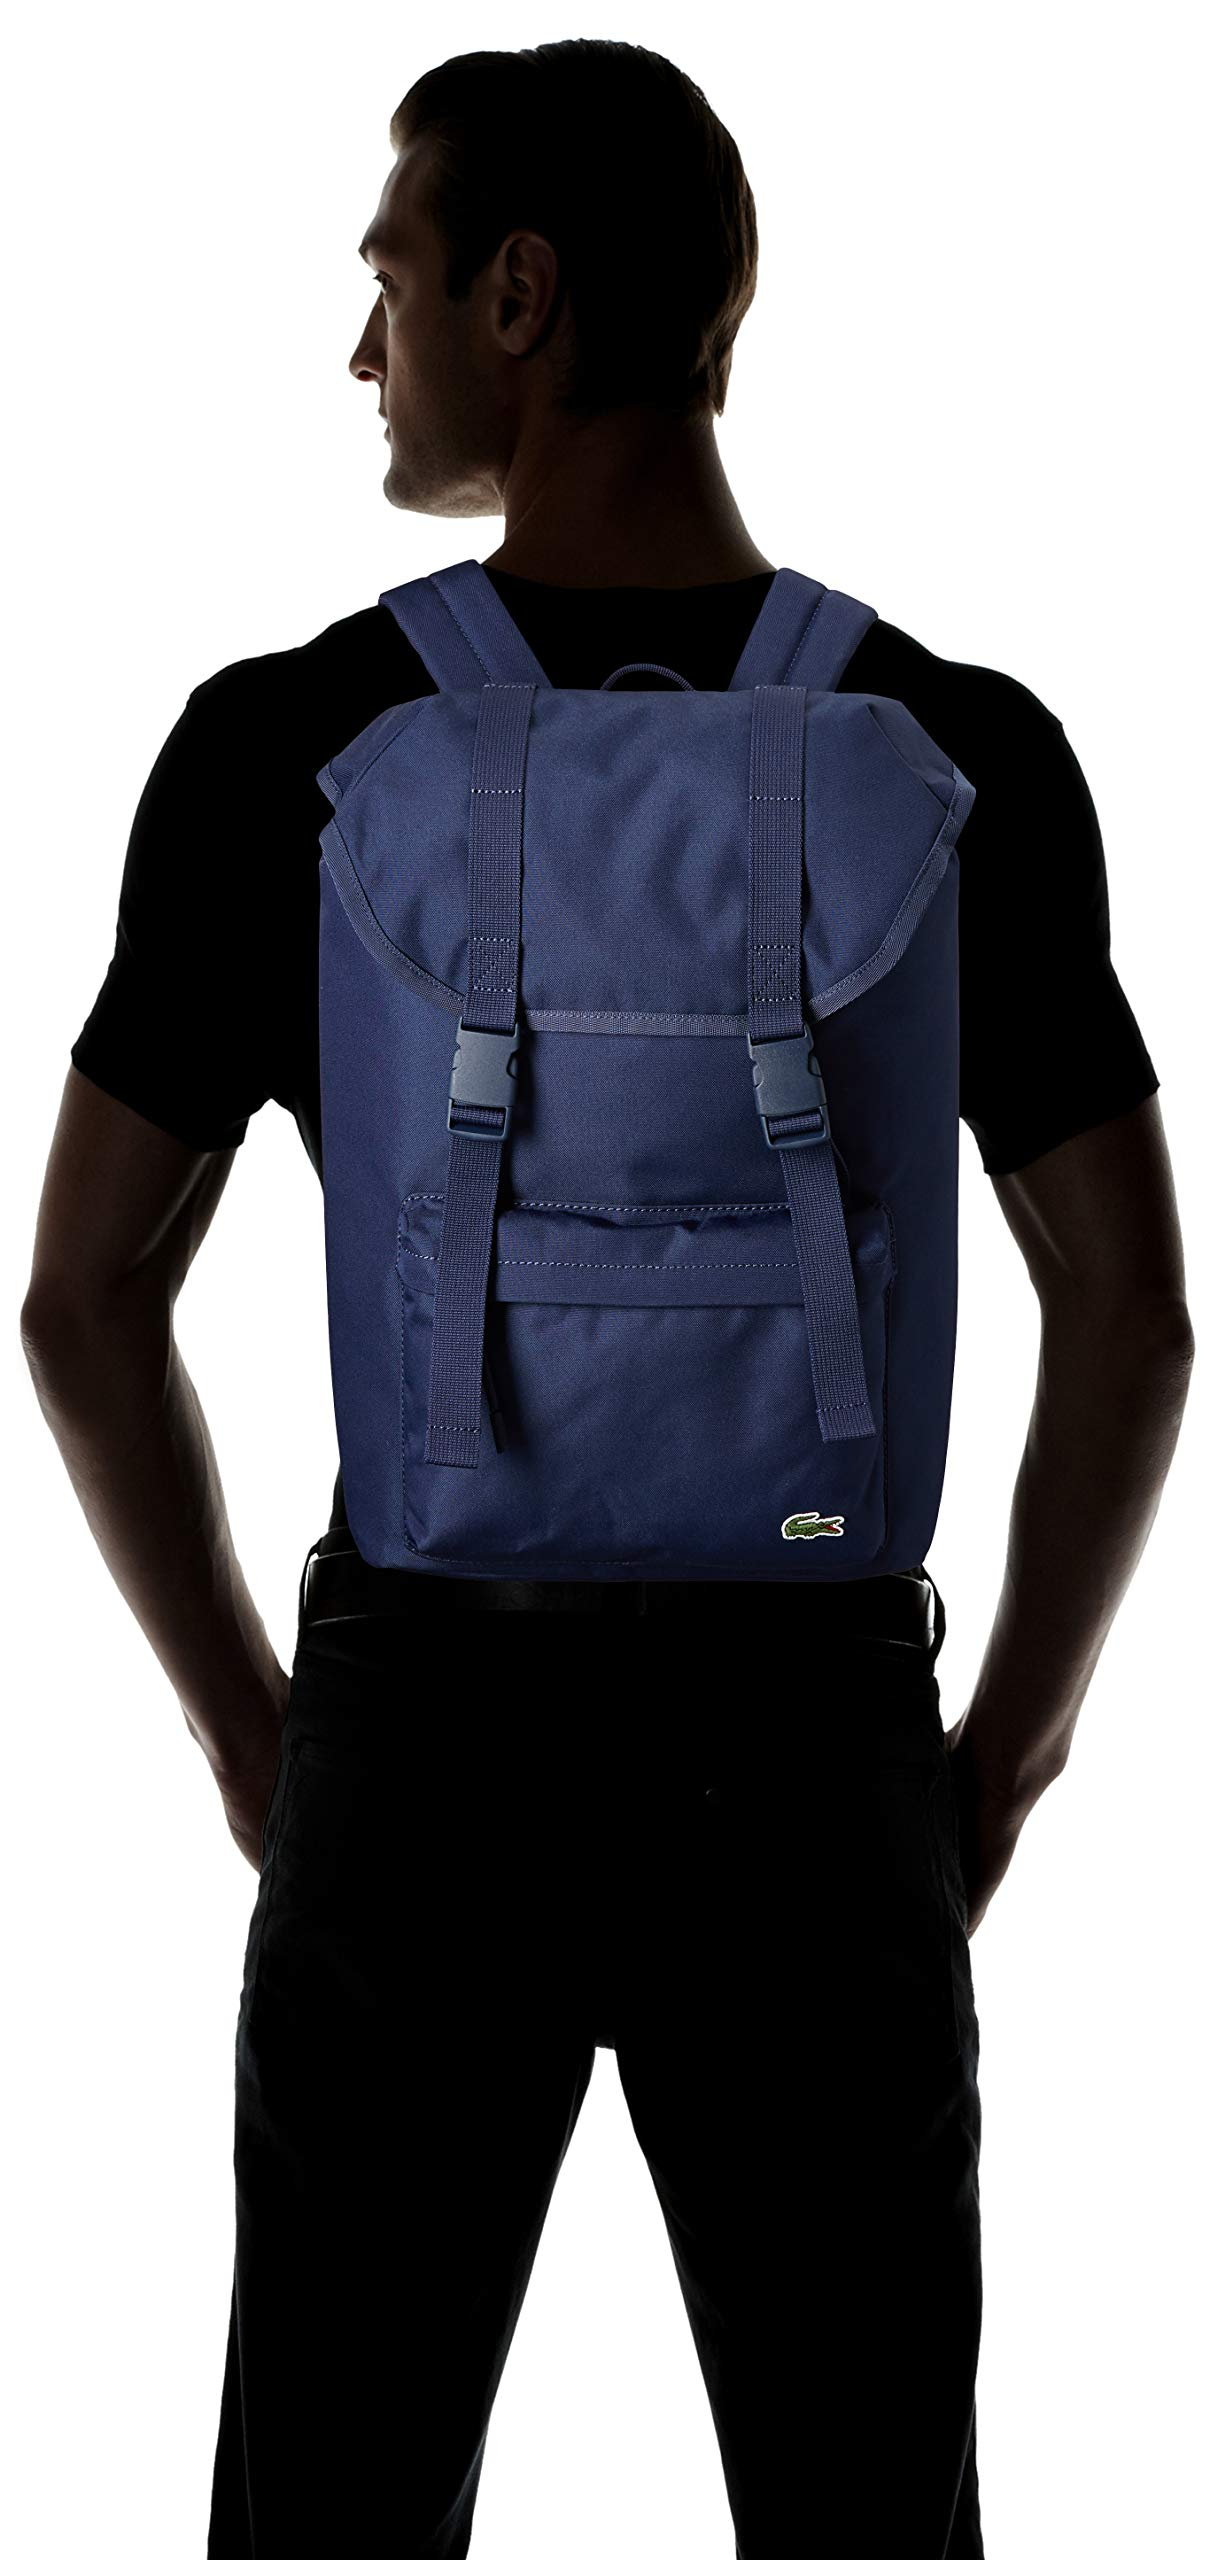 Lacoste Men's Neocroc Flap Backpack, Peacoat, 00 by Lacoste (Image #4)